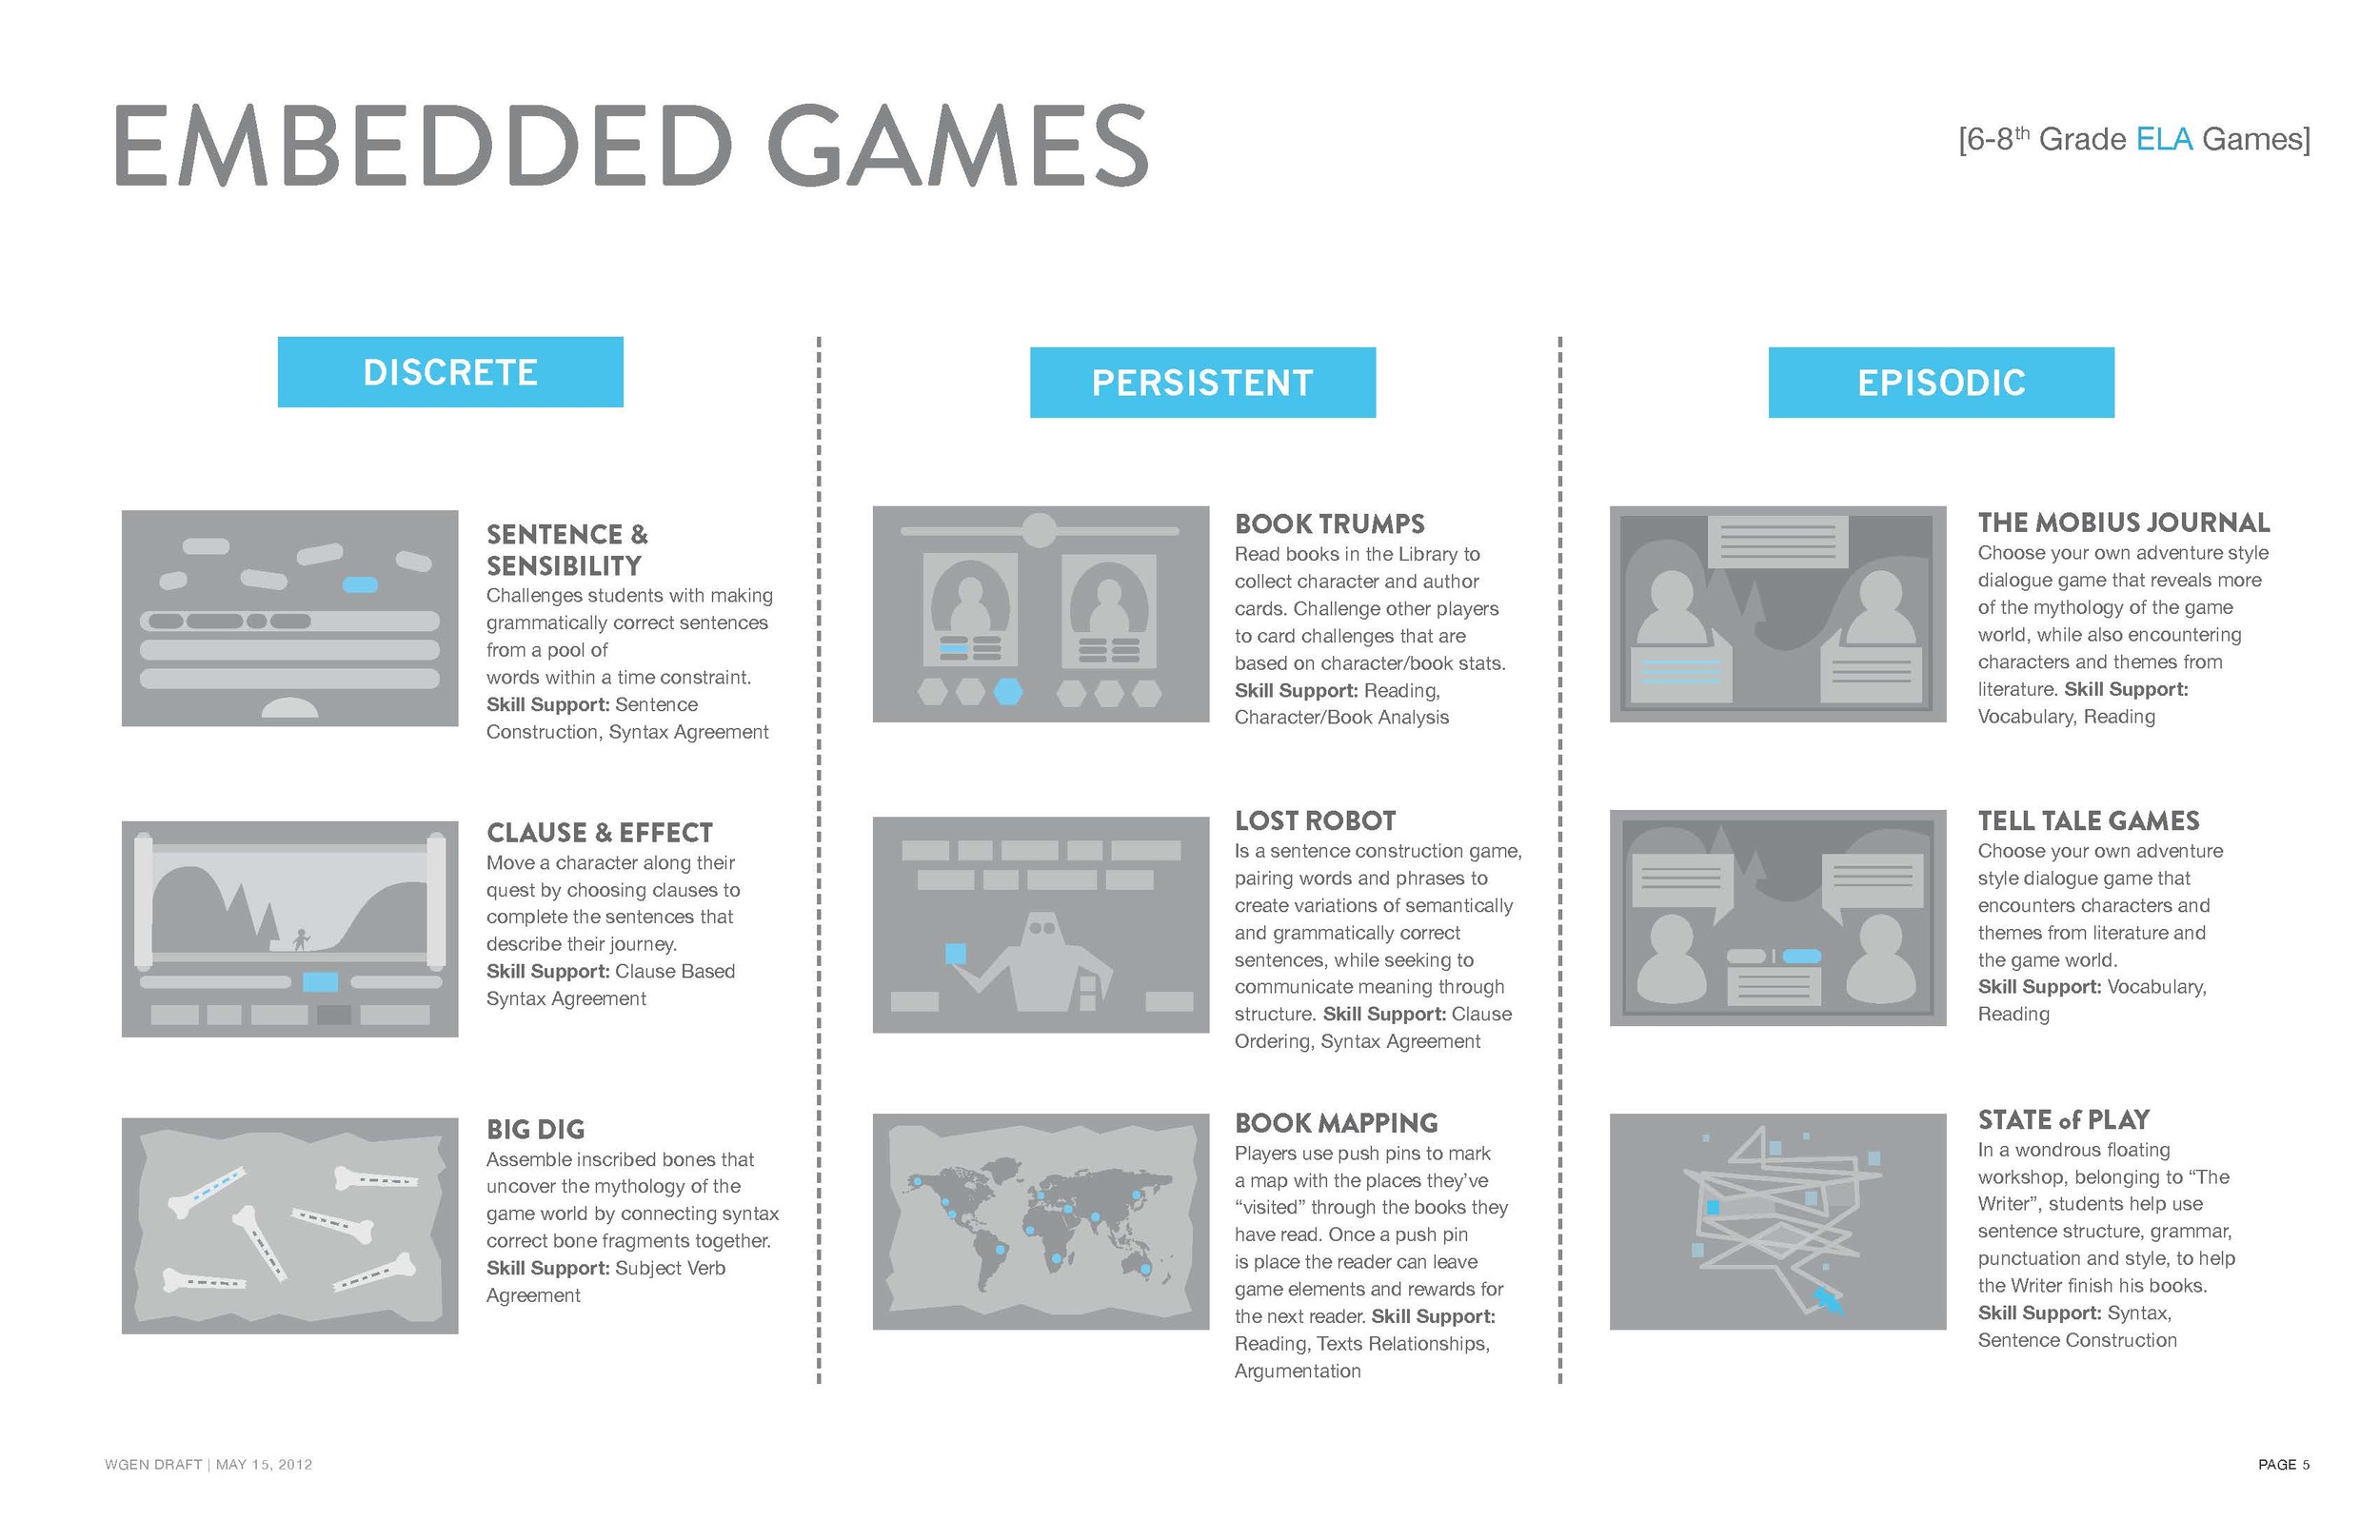 Games_Vision_Page_05.jpg